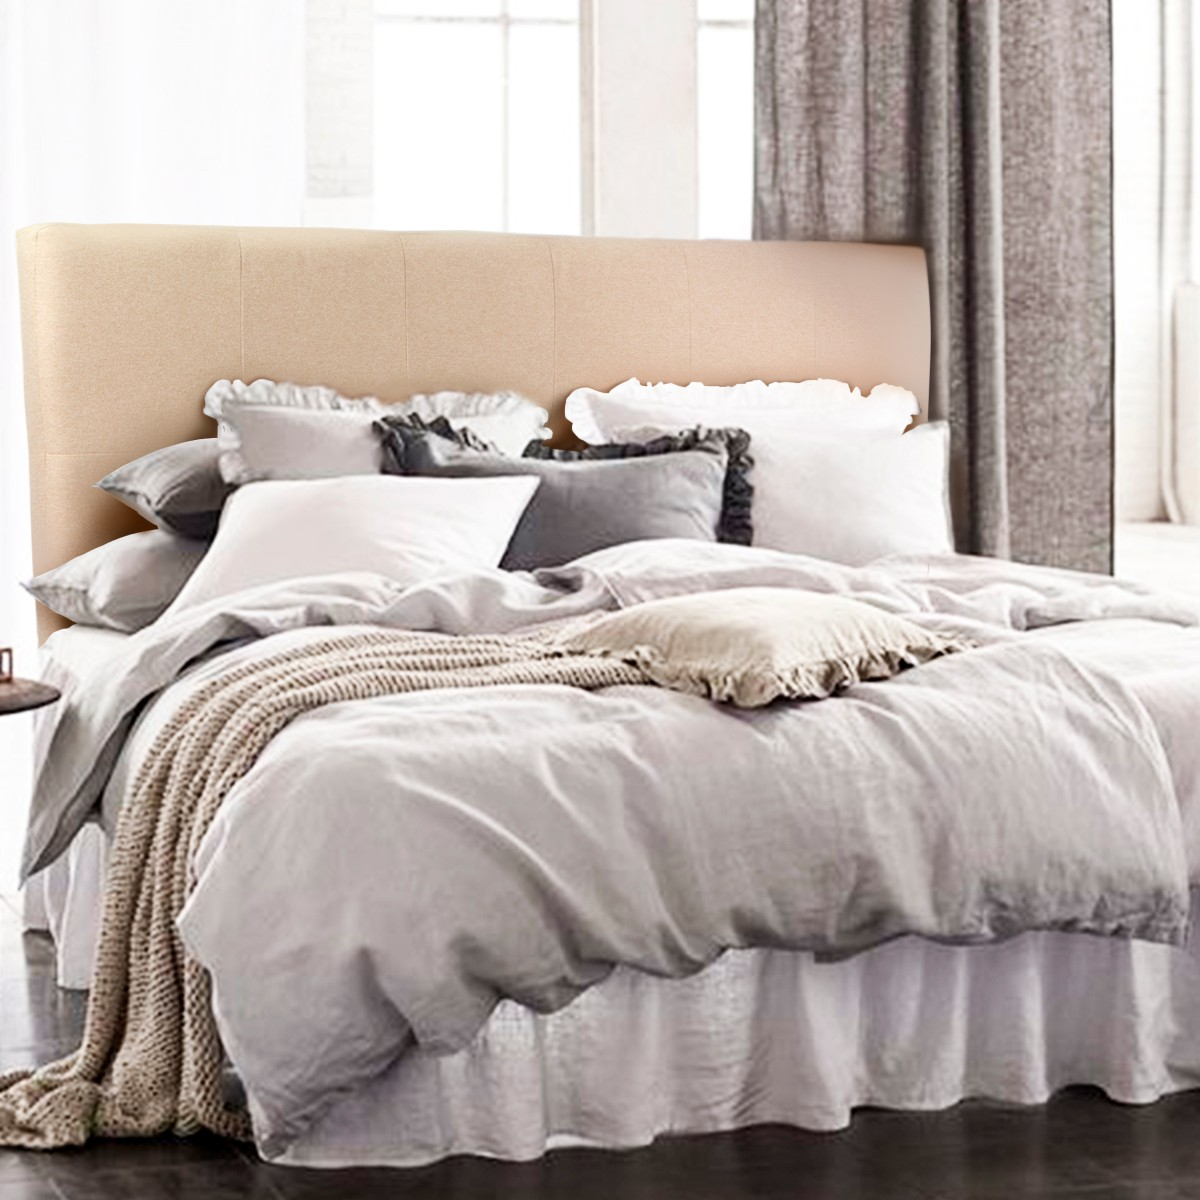 XtremepowerUS Barton Headboard Upholstered Tufted Button Fabric Full/Queen Size, Champagne